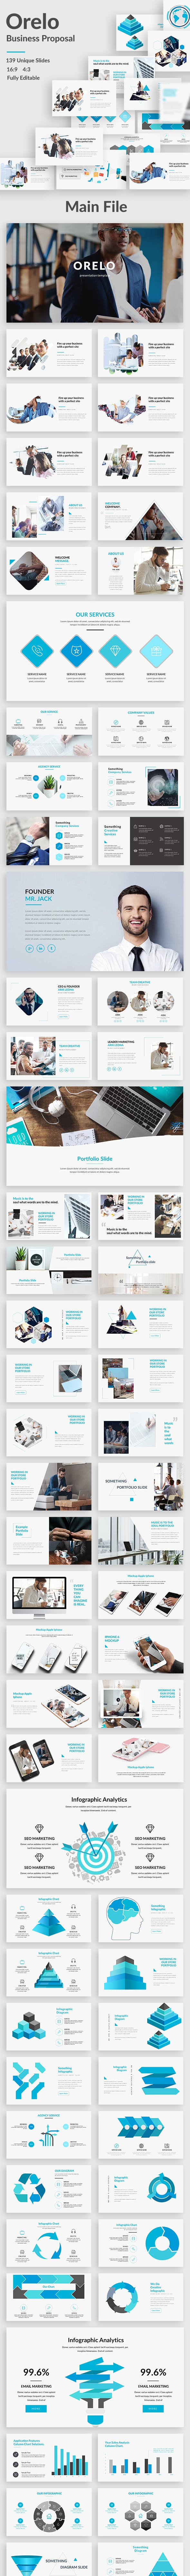 Orelo Business Proposal Powerpoint Template By Bluestack Graphicriver